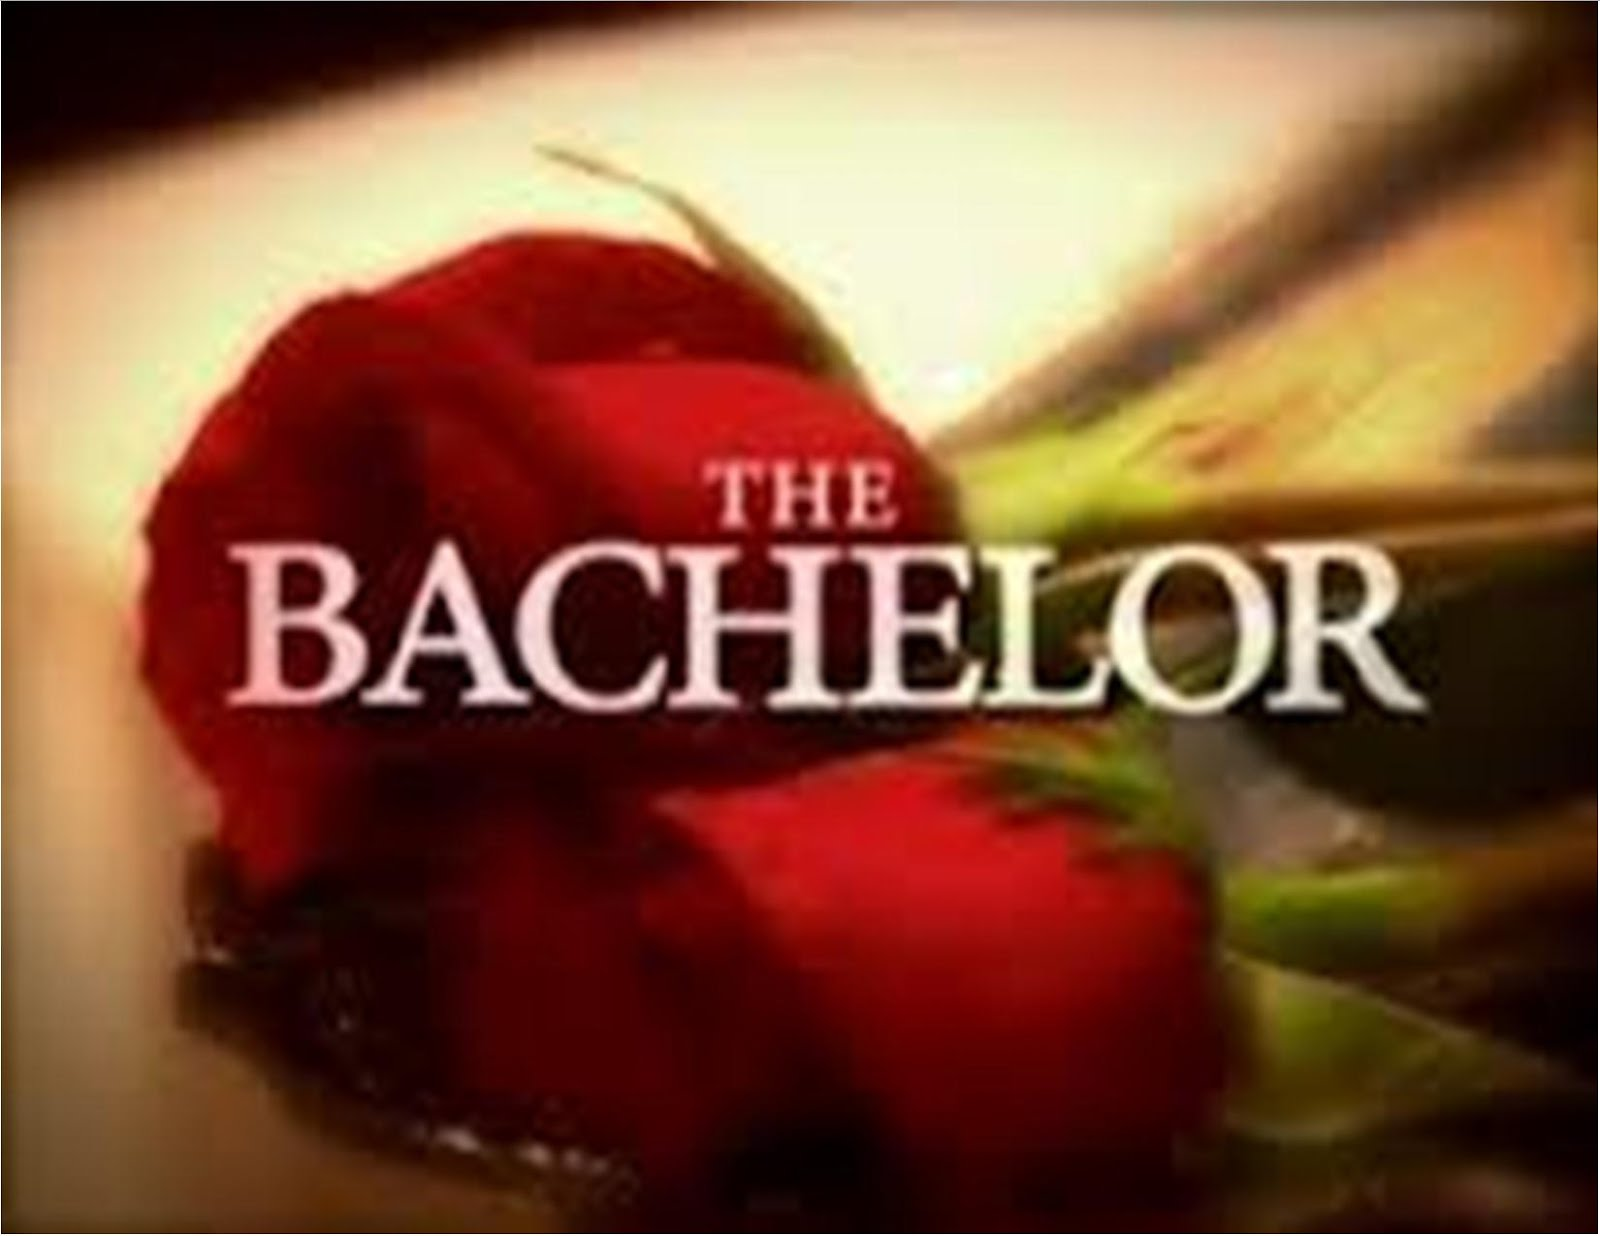 Until you can overhead press over 200 pounds, I consider all arguments/jokes against The Bachelor to be invalid.